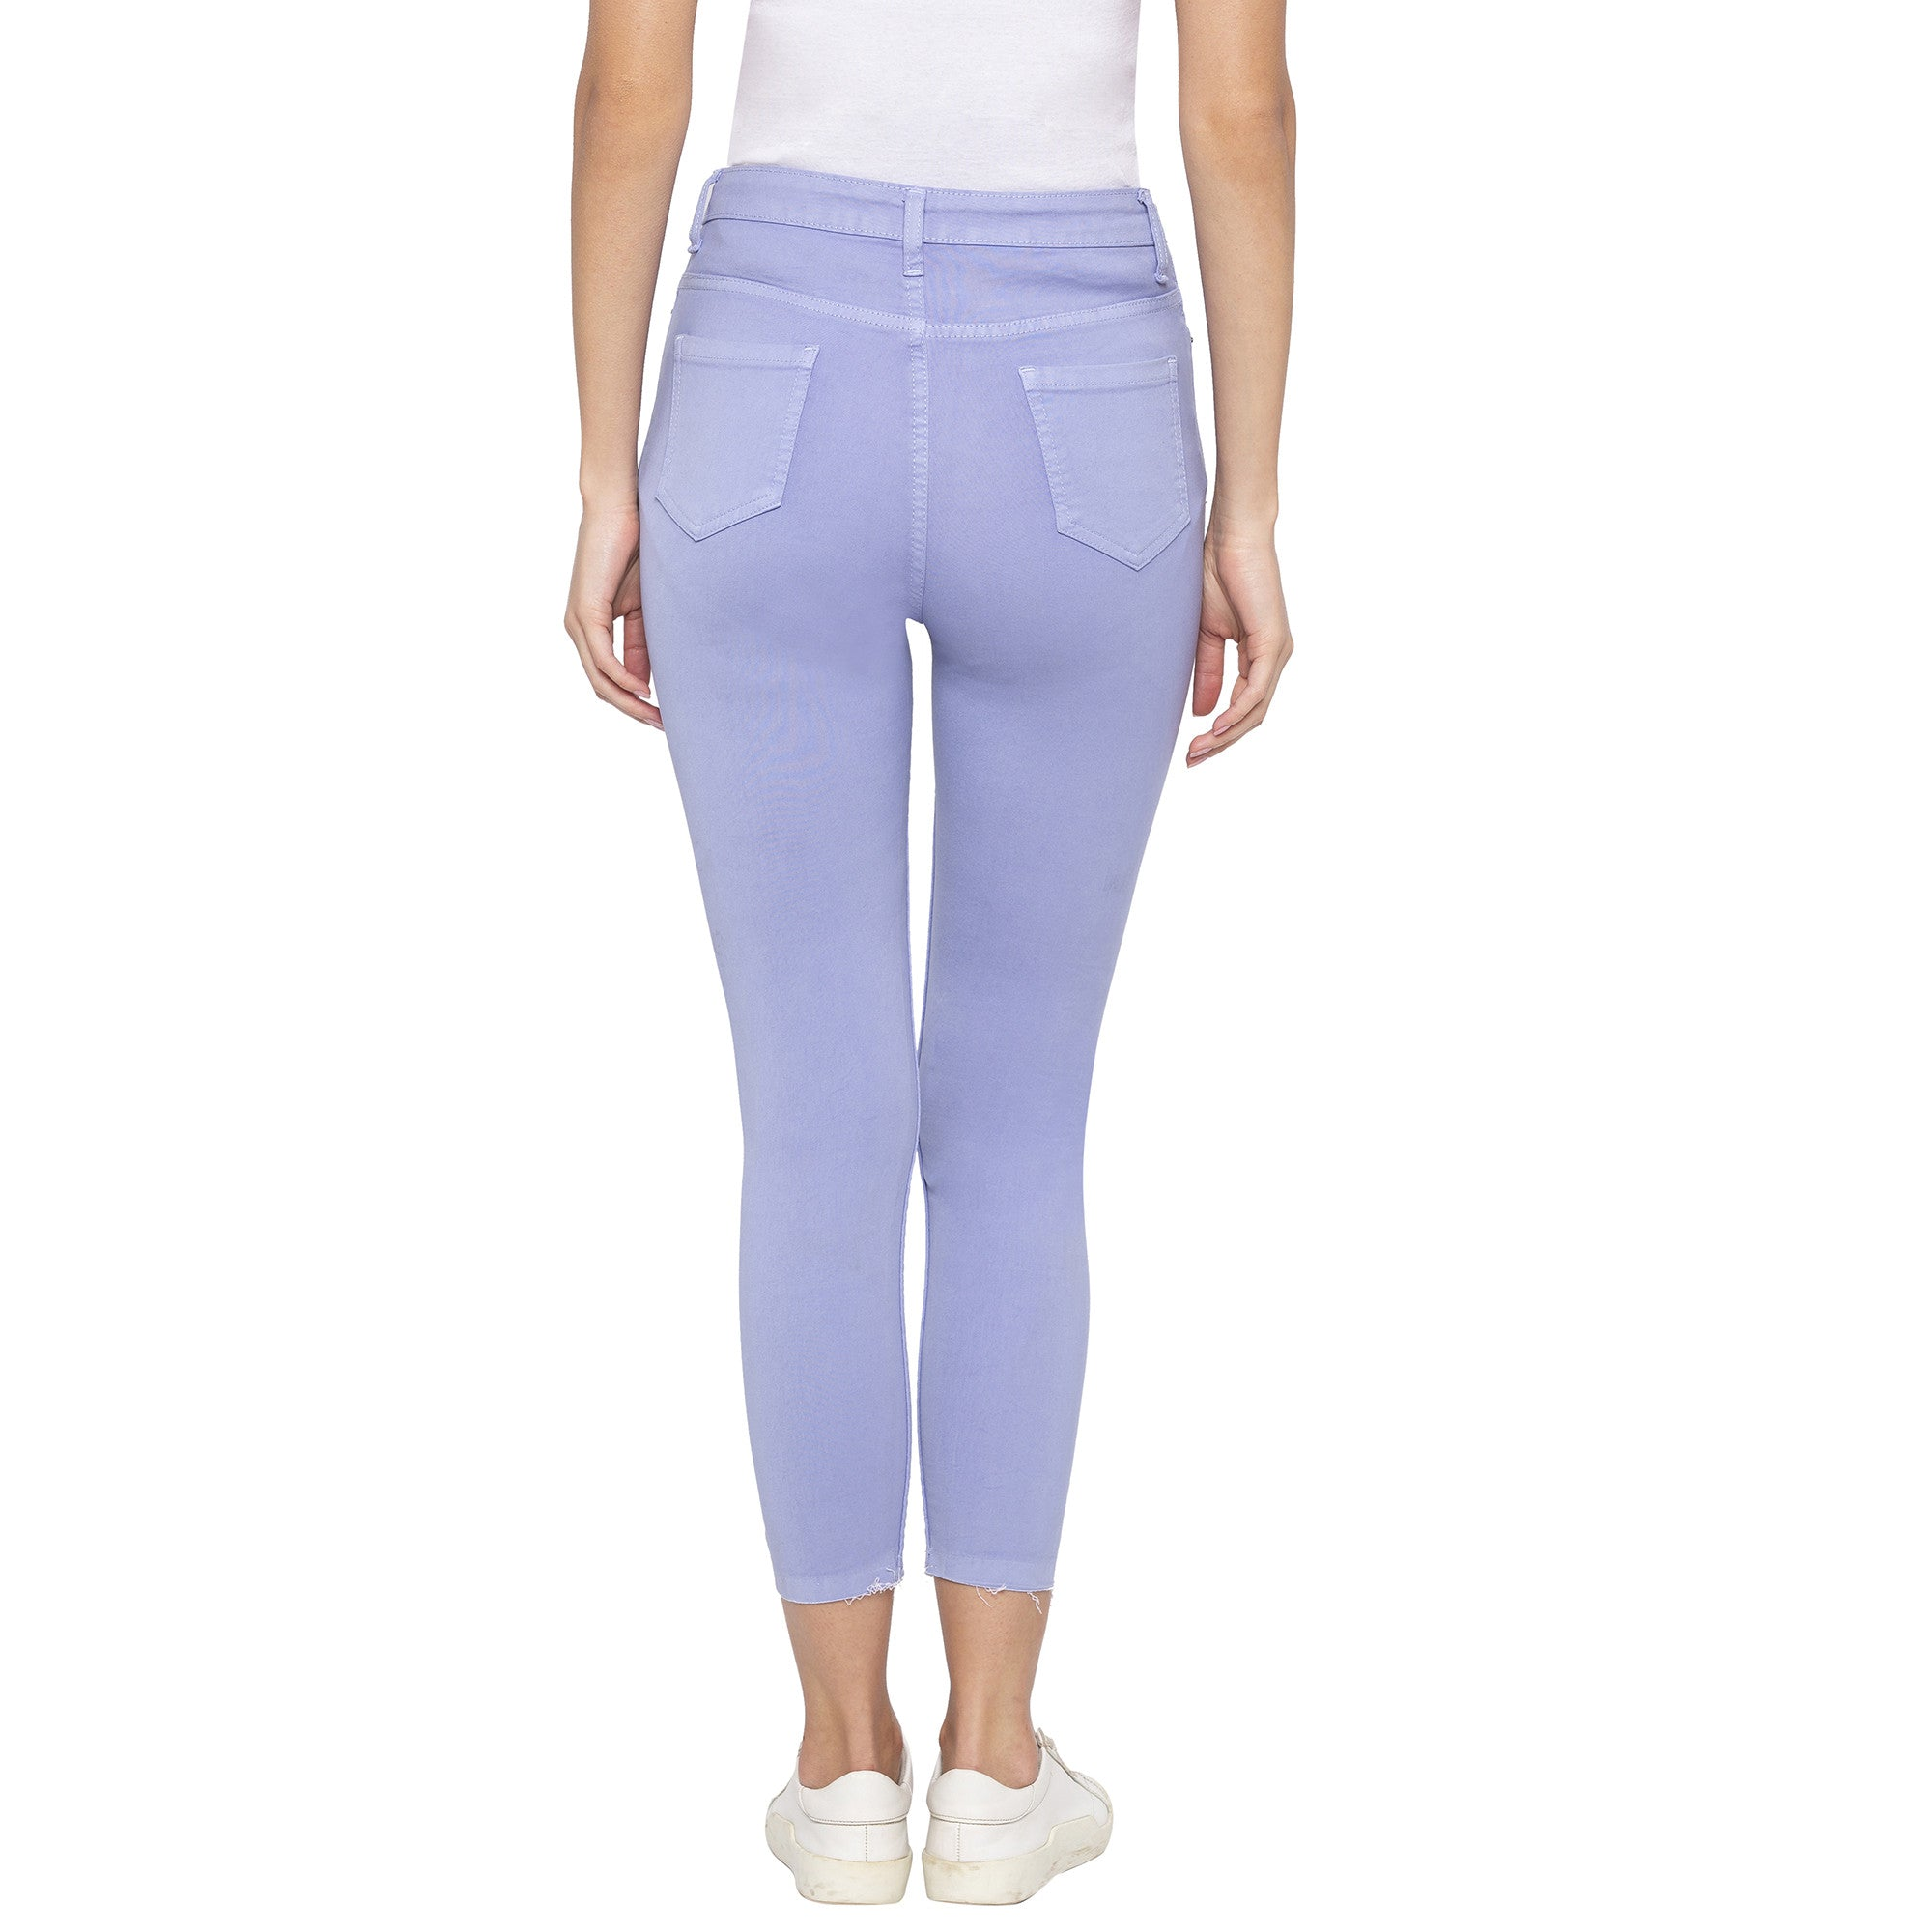 Casual Purple Color Skinny Fit Mid-Rise Cropped Jeans-3